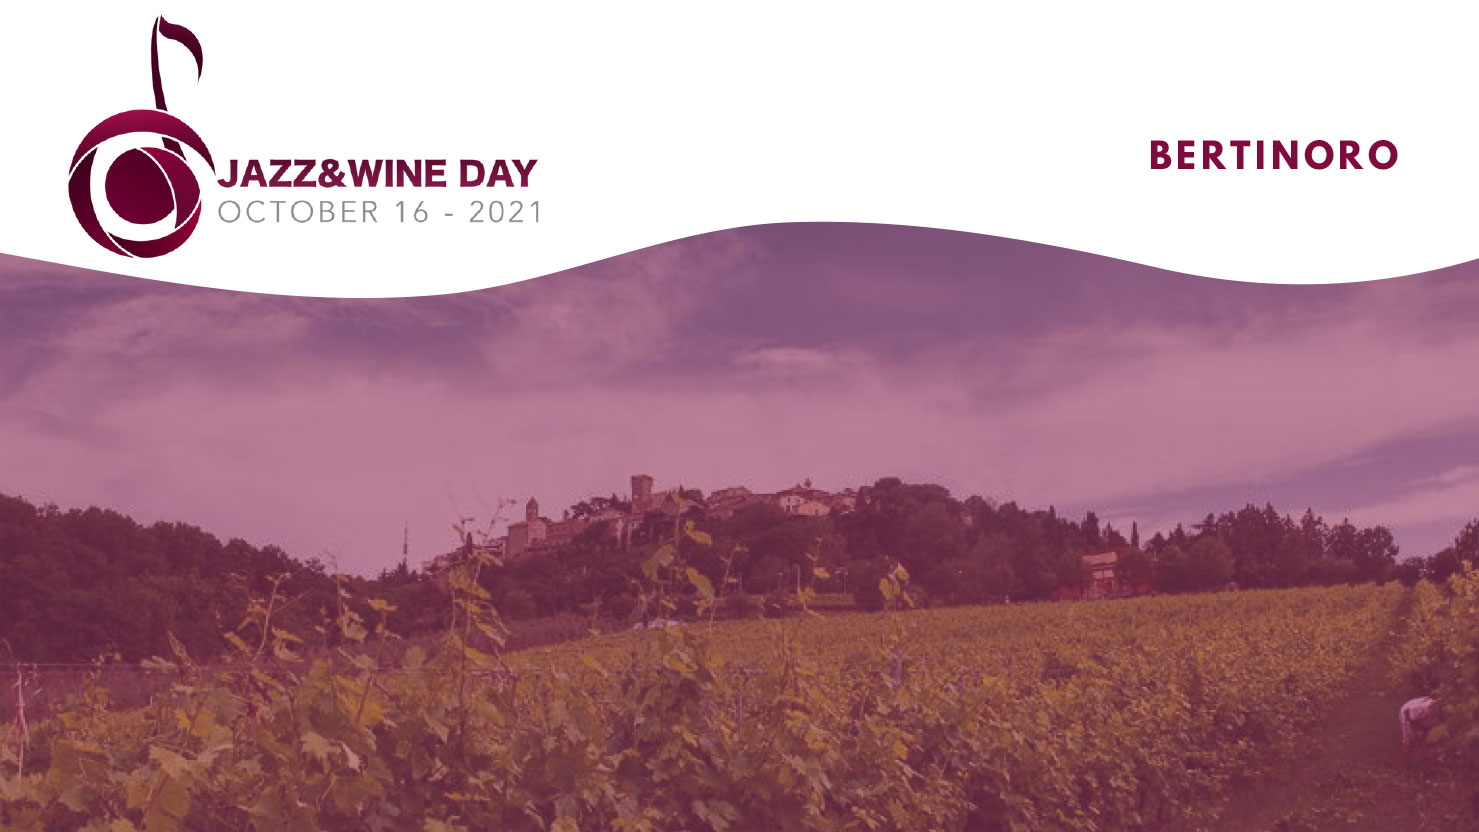 <span class='tit-hp-mj' style='color:#7f0f3d;'>Jazz & Wine Day</span></br>